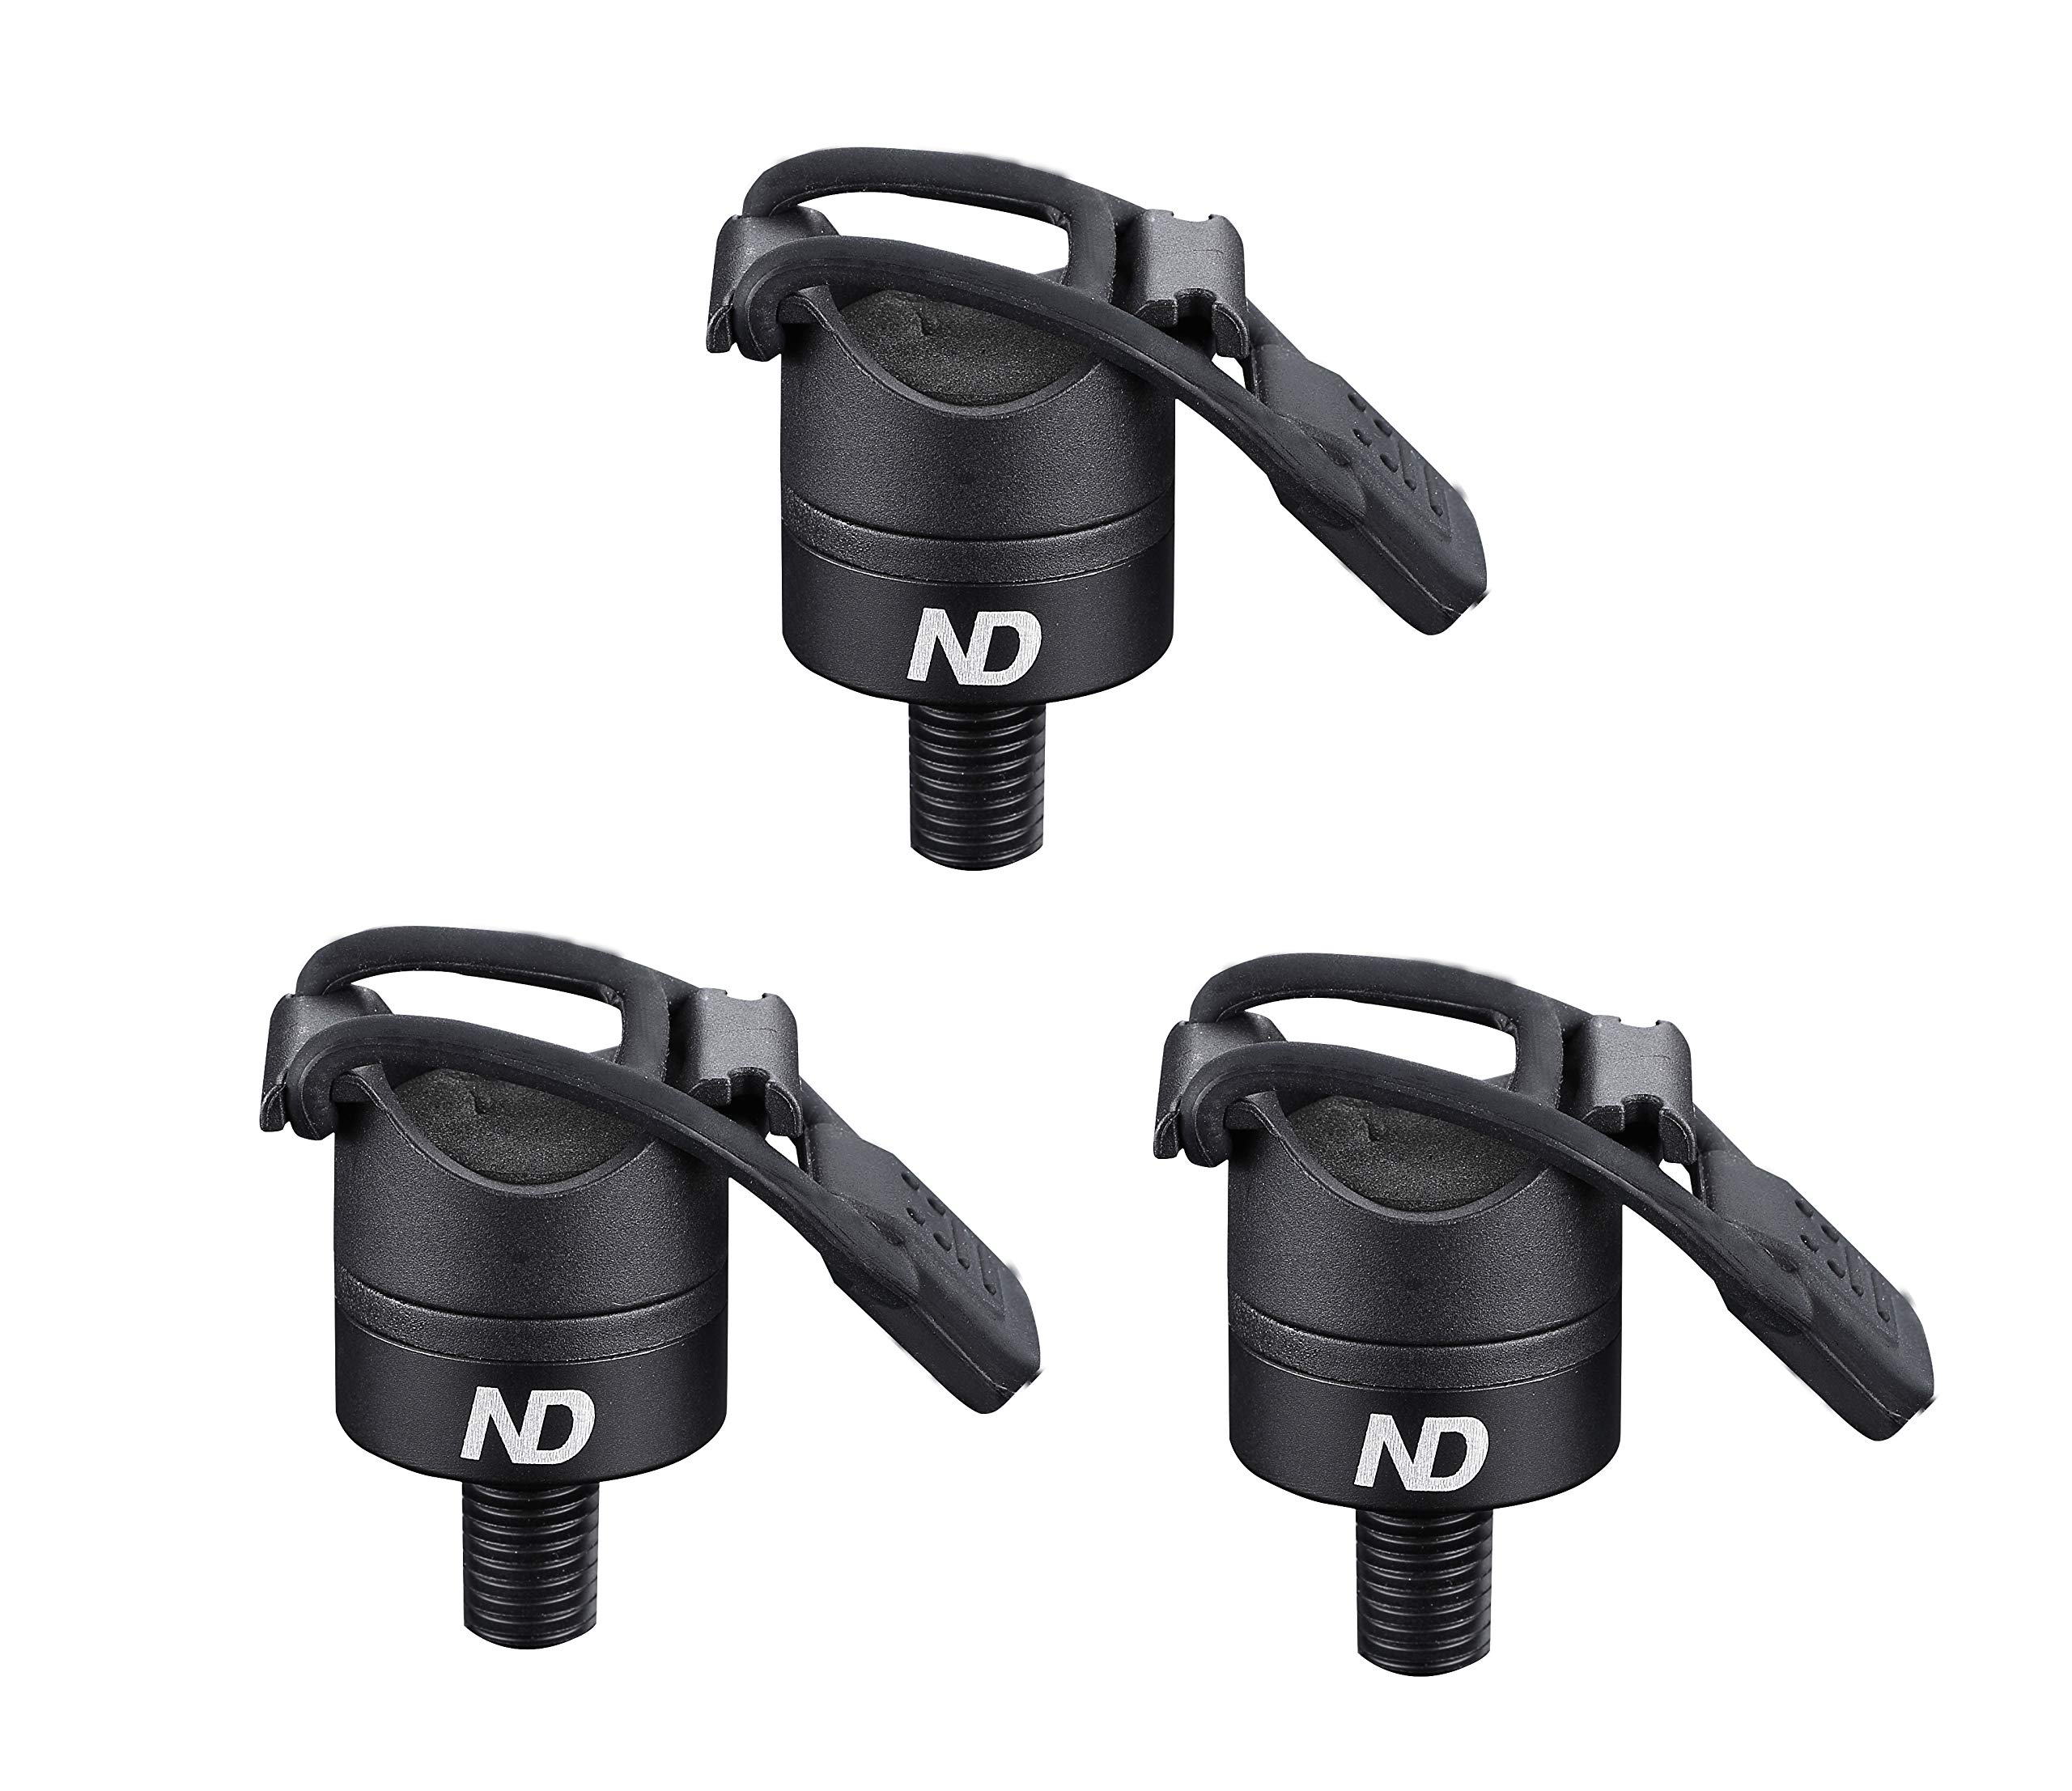 New Direction Tackle 3*Magnetic Butt Rest P8 for Carp Fishing rod(3 PCS)